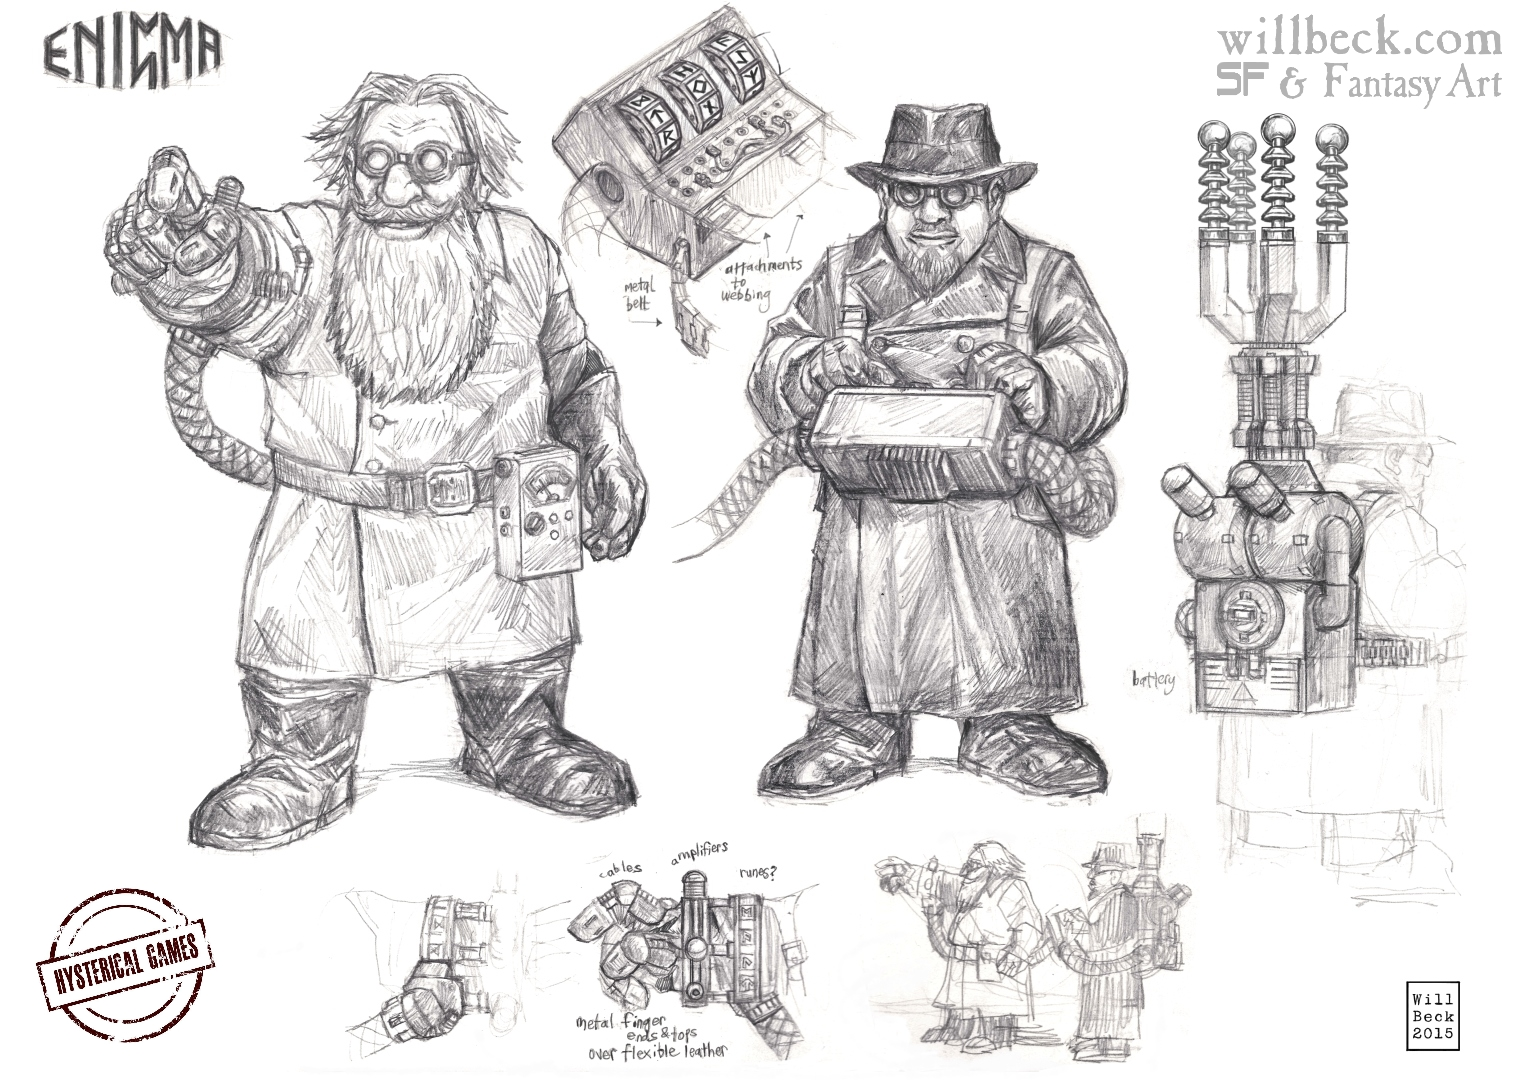 Panzerfäuste Dwarf Enigma machines and Operators